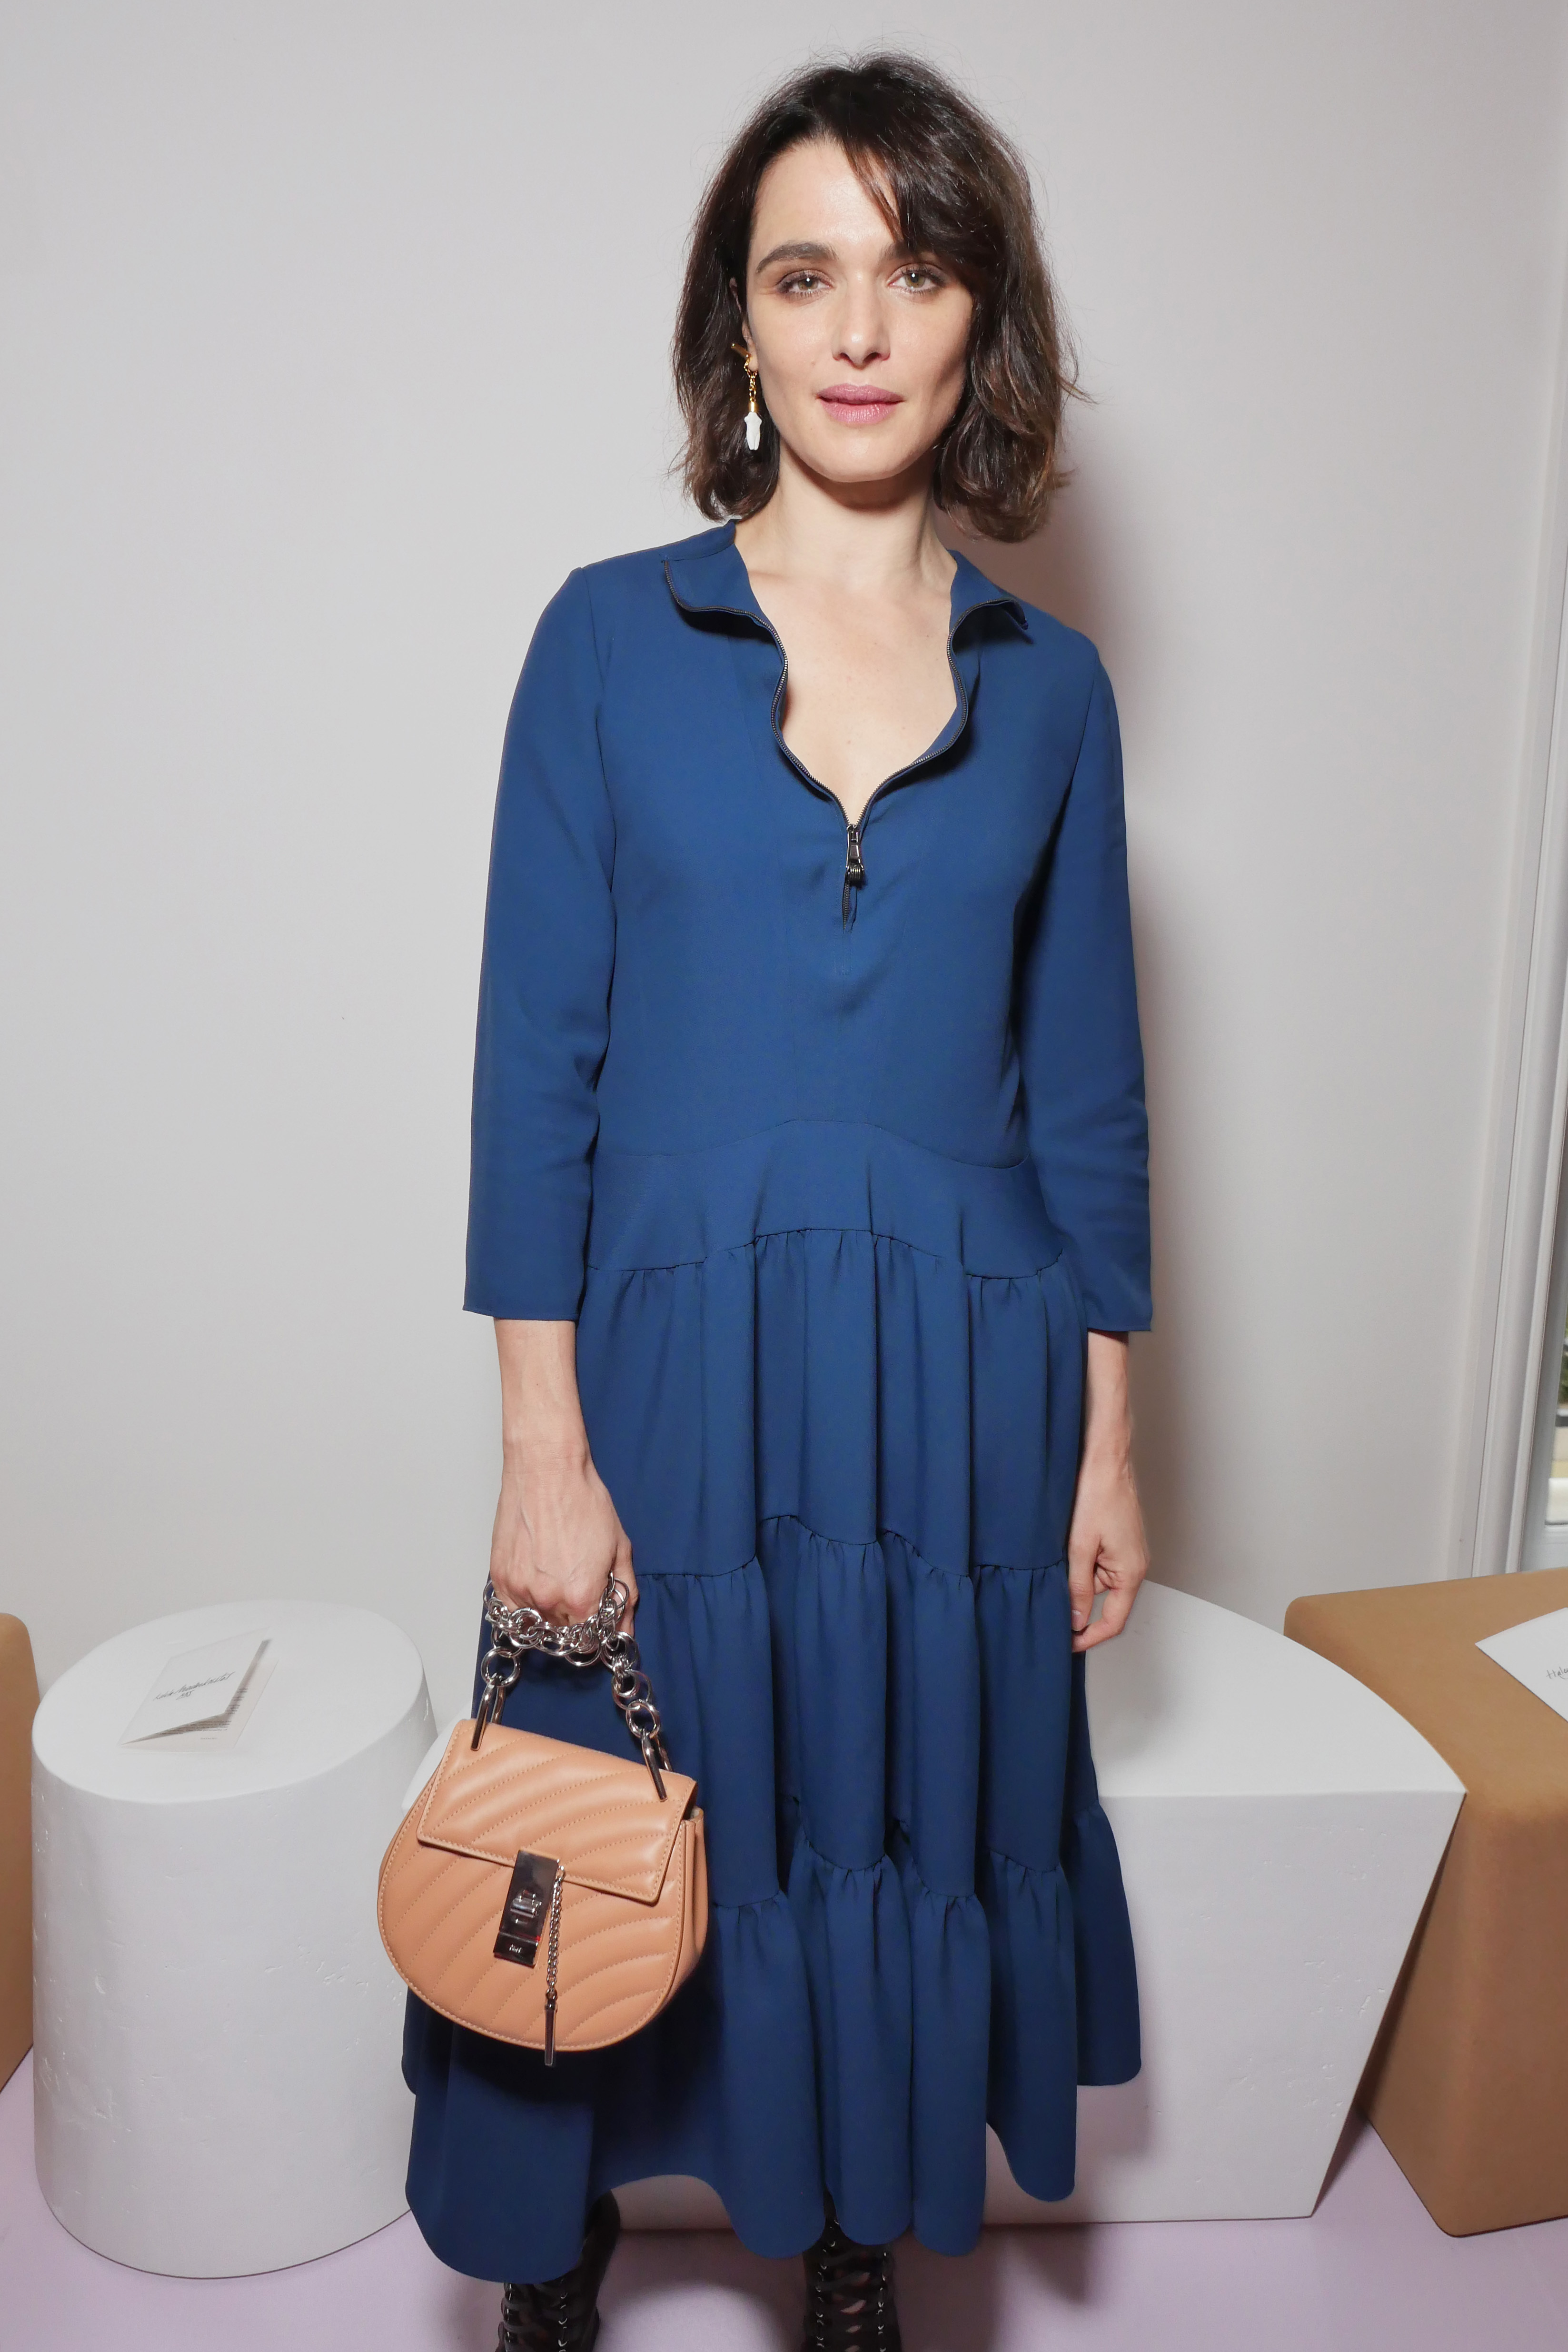 Rachel Weisz attends the Chloe show for Spring/Summer 2018 at Paris Fashion Week on Sept. 28, 2017.